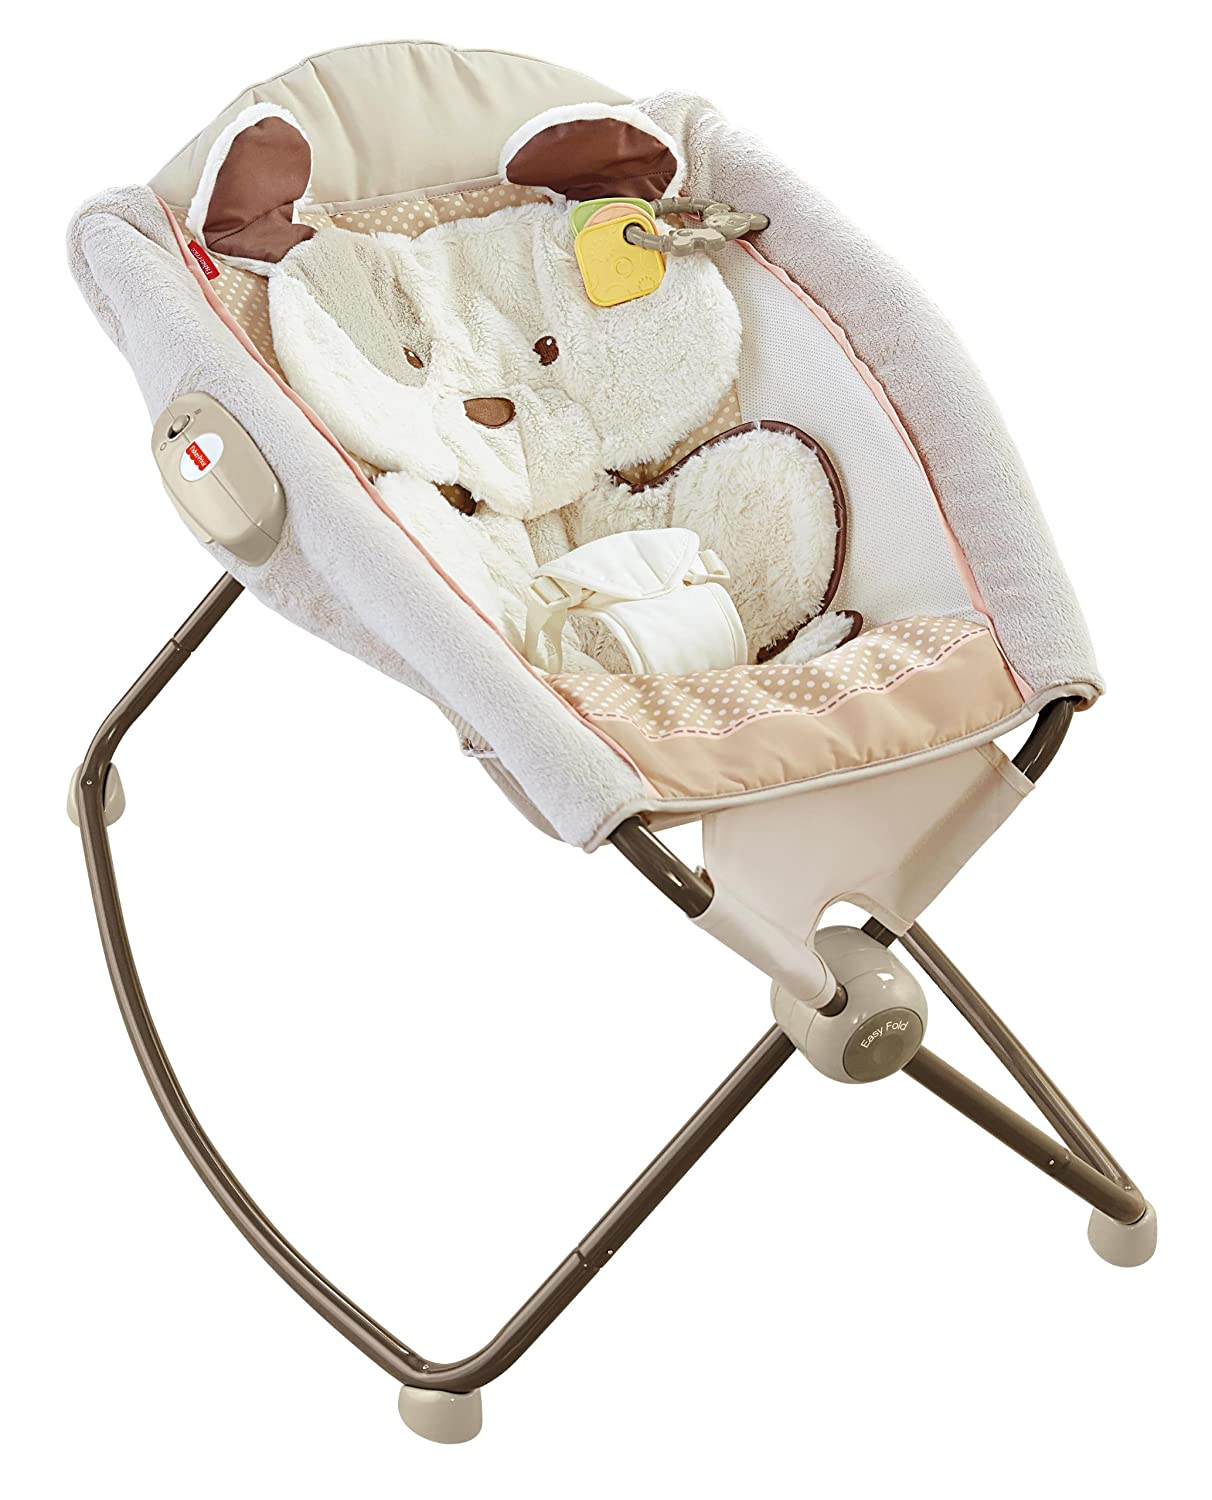 Fisher-Price Rock 'n Play Sleeper (All Versions)